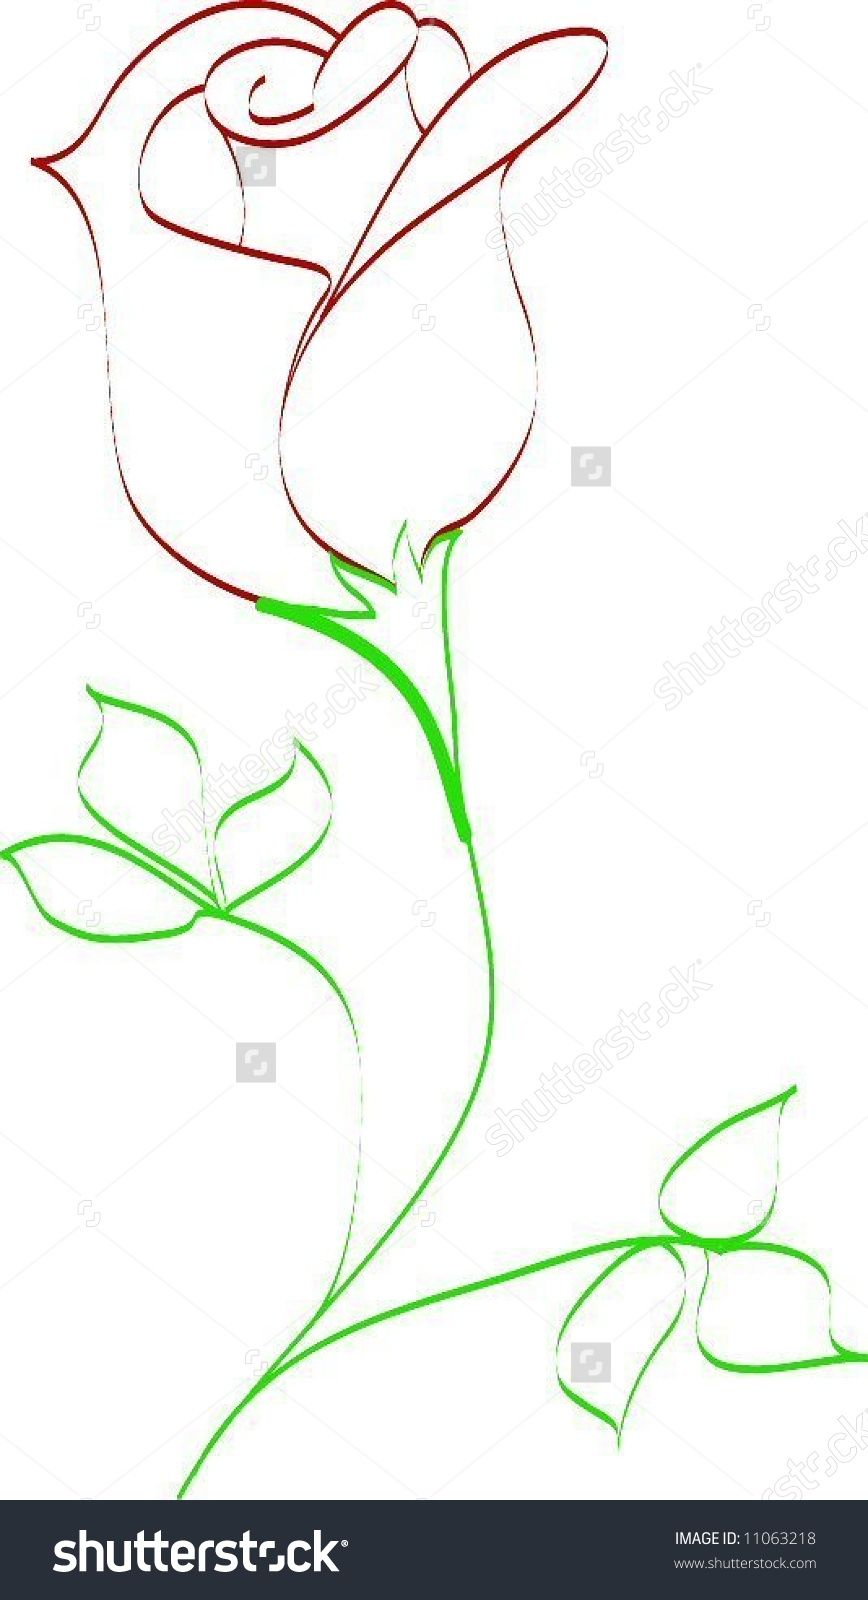 Simple Line Drawing Of Rose Bud Stock Vector Illustration 11063218